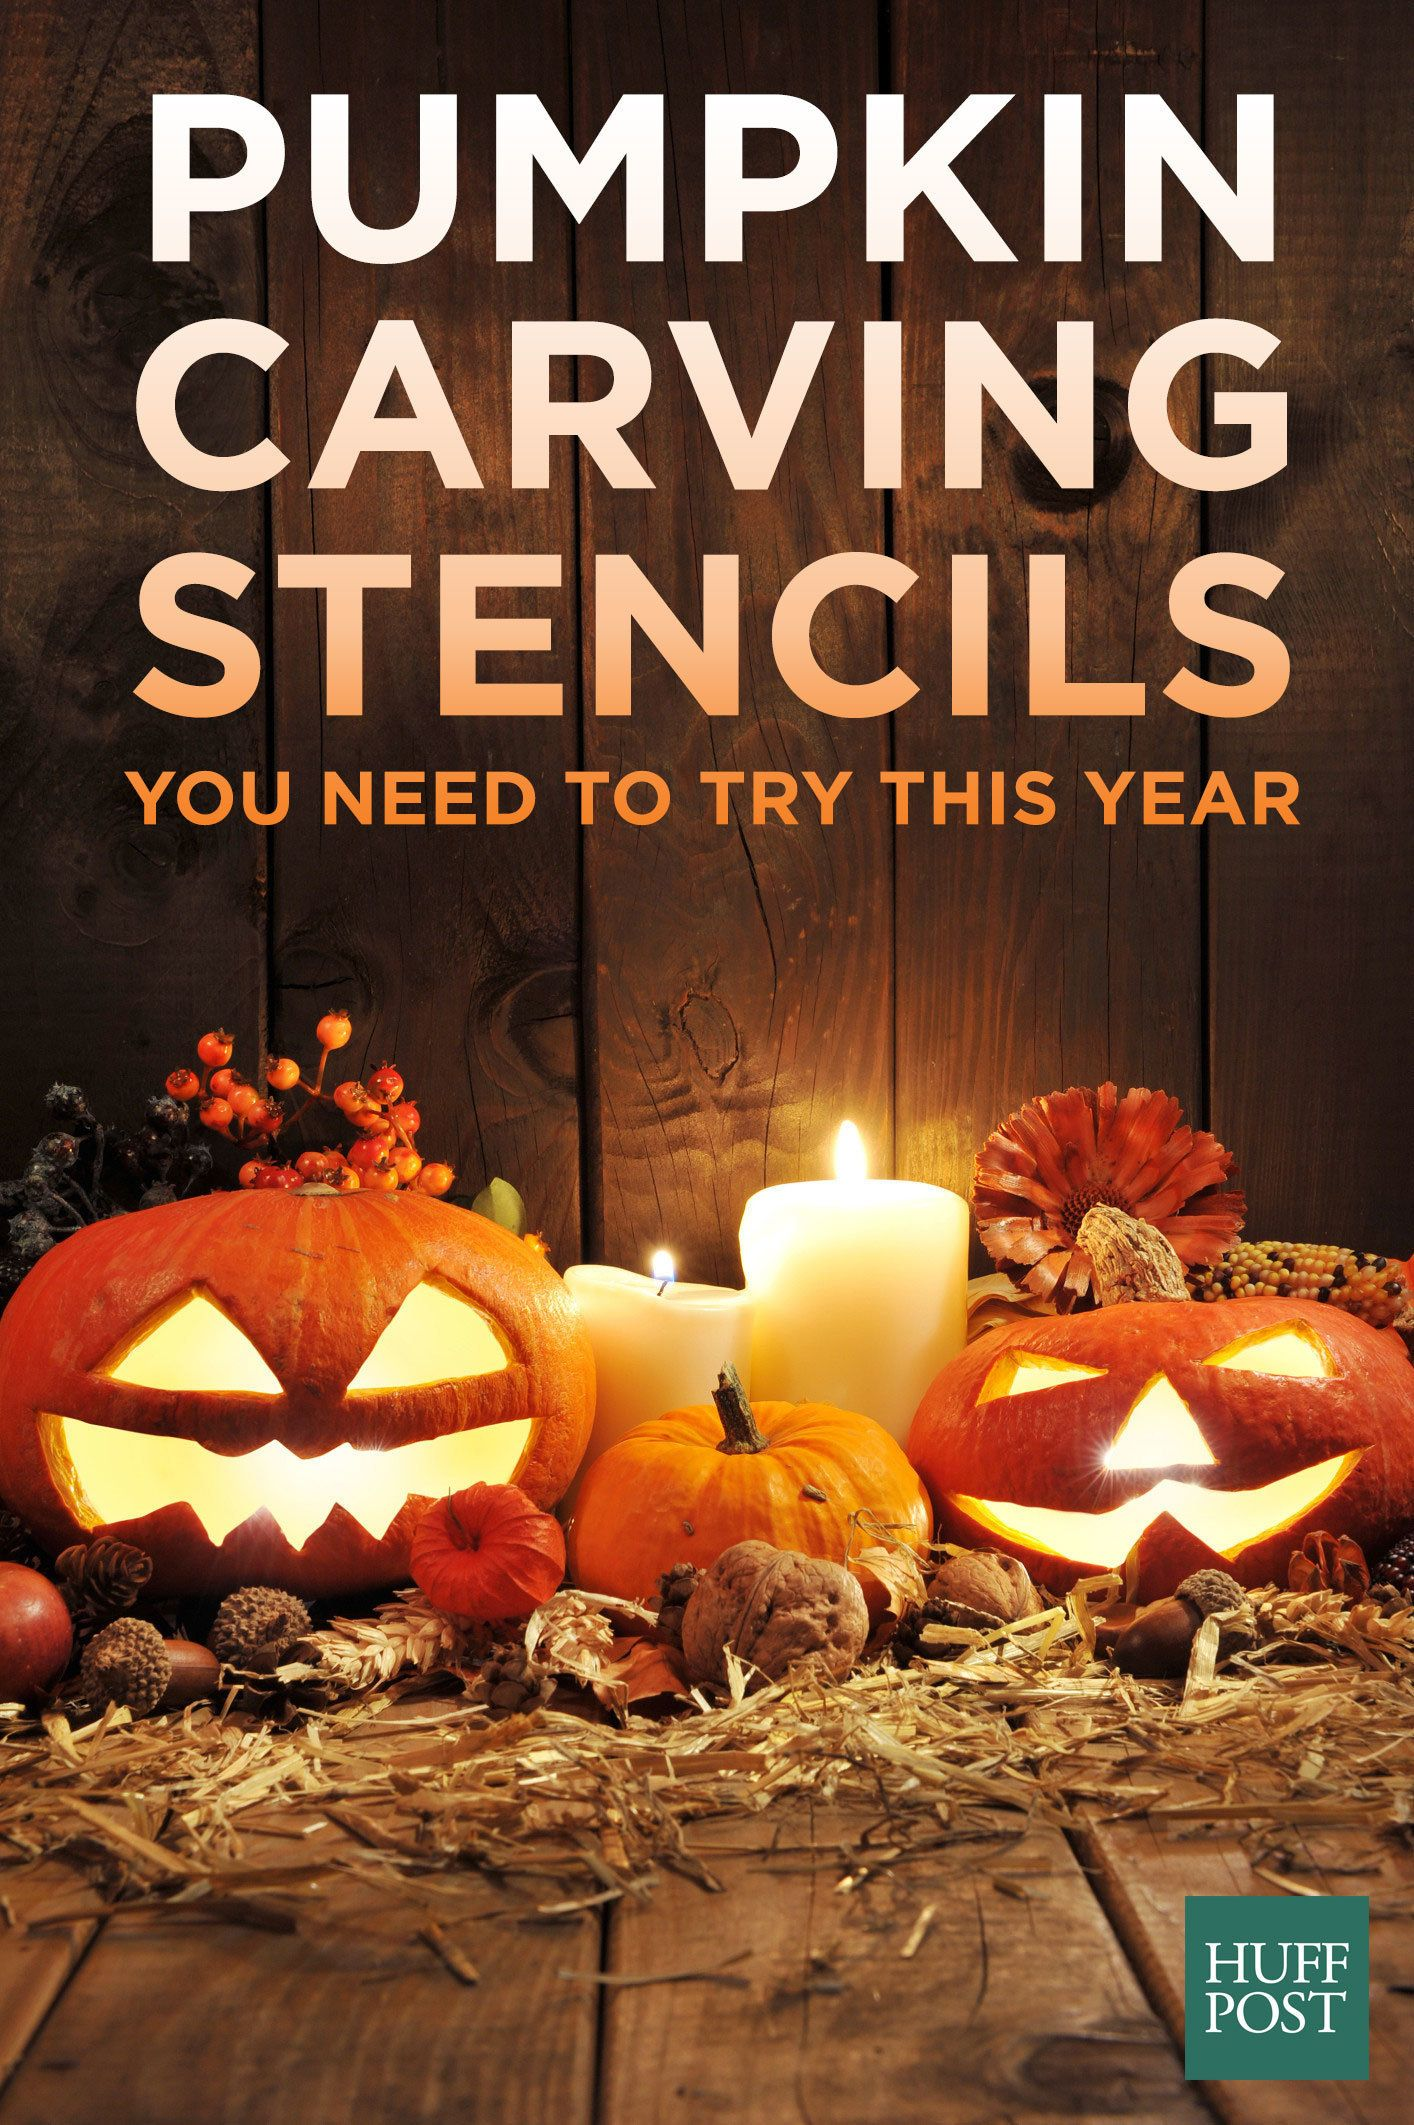 The free pumpkin carving stencils you need to try this year